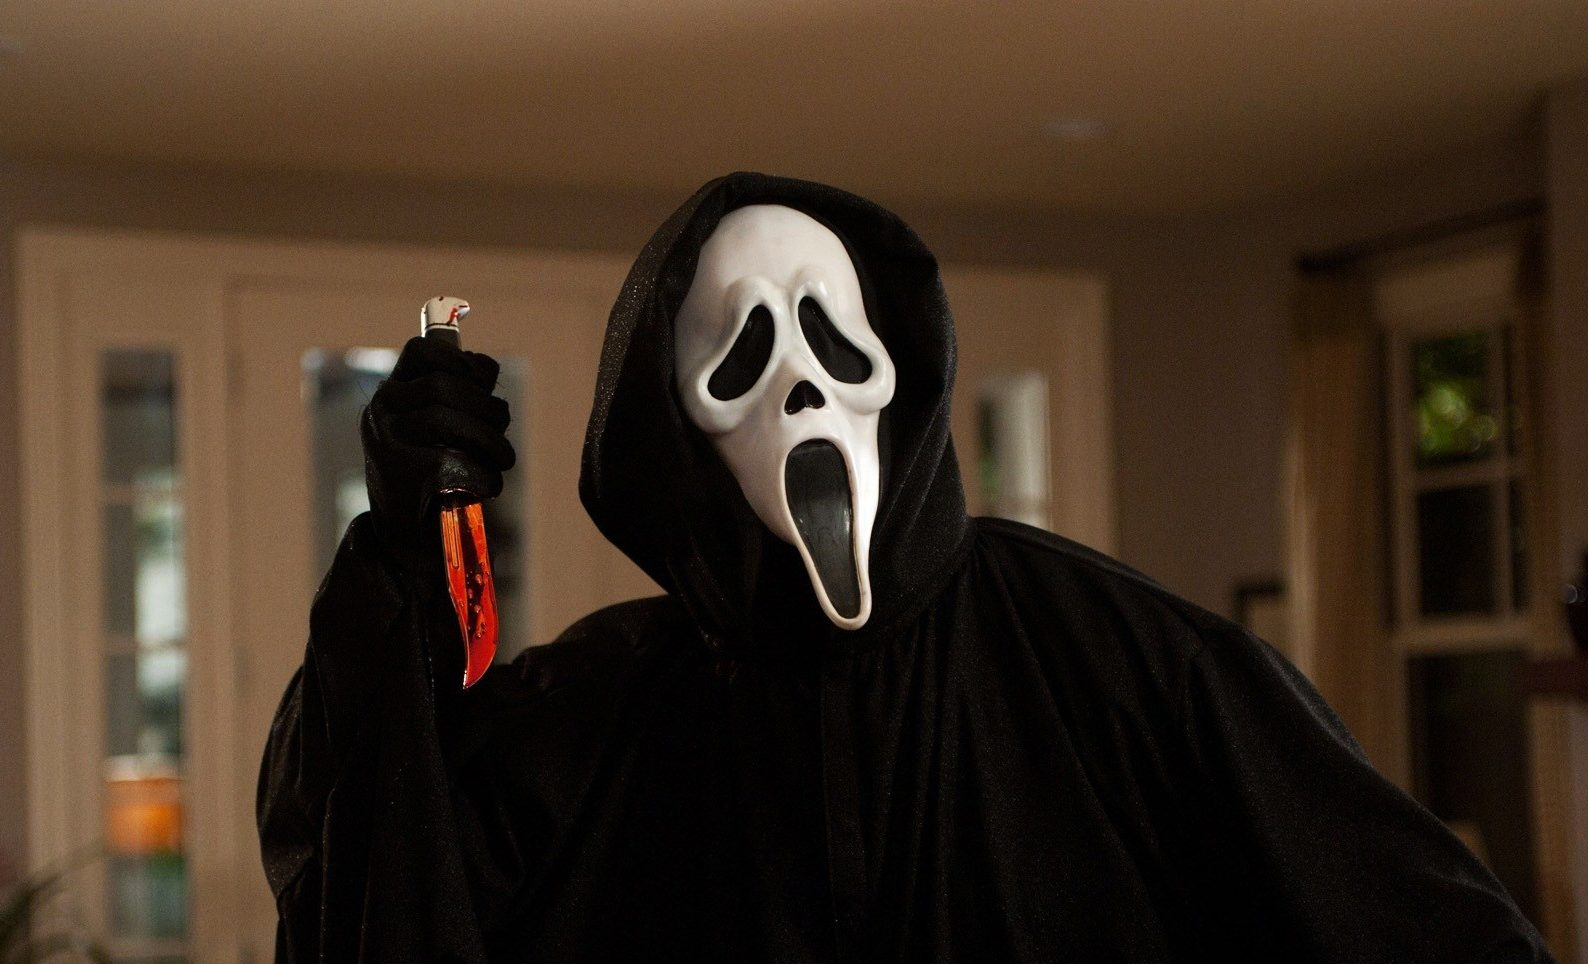 Scream 5 to Release in 2022